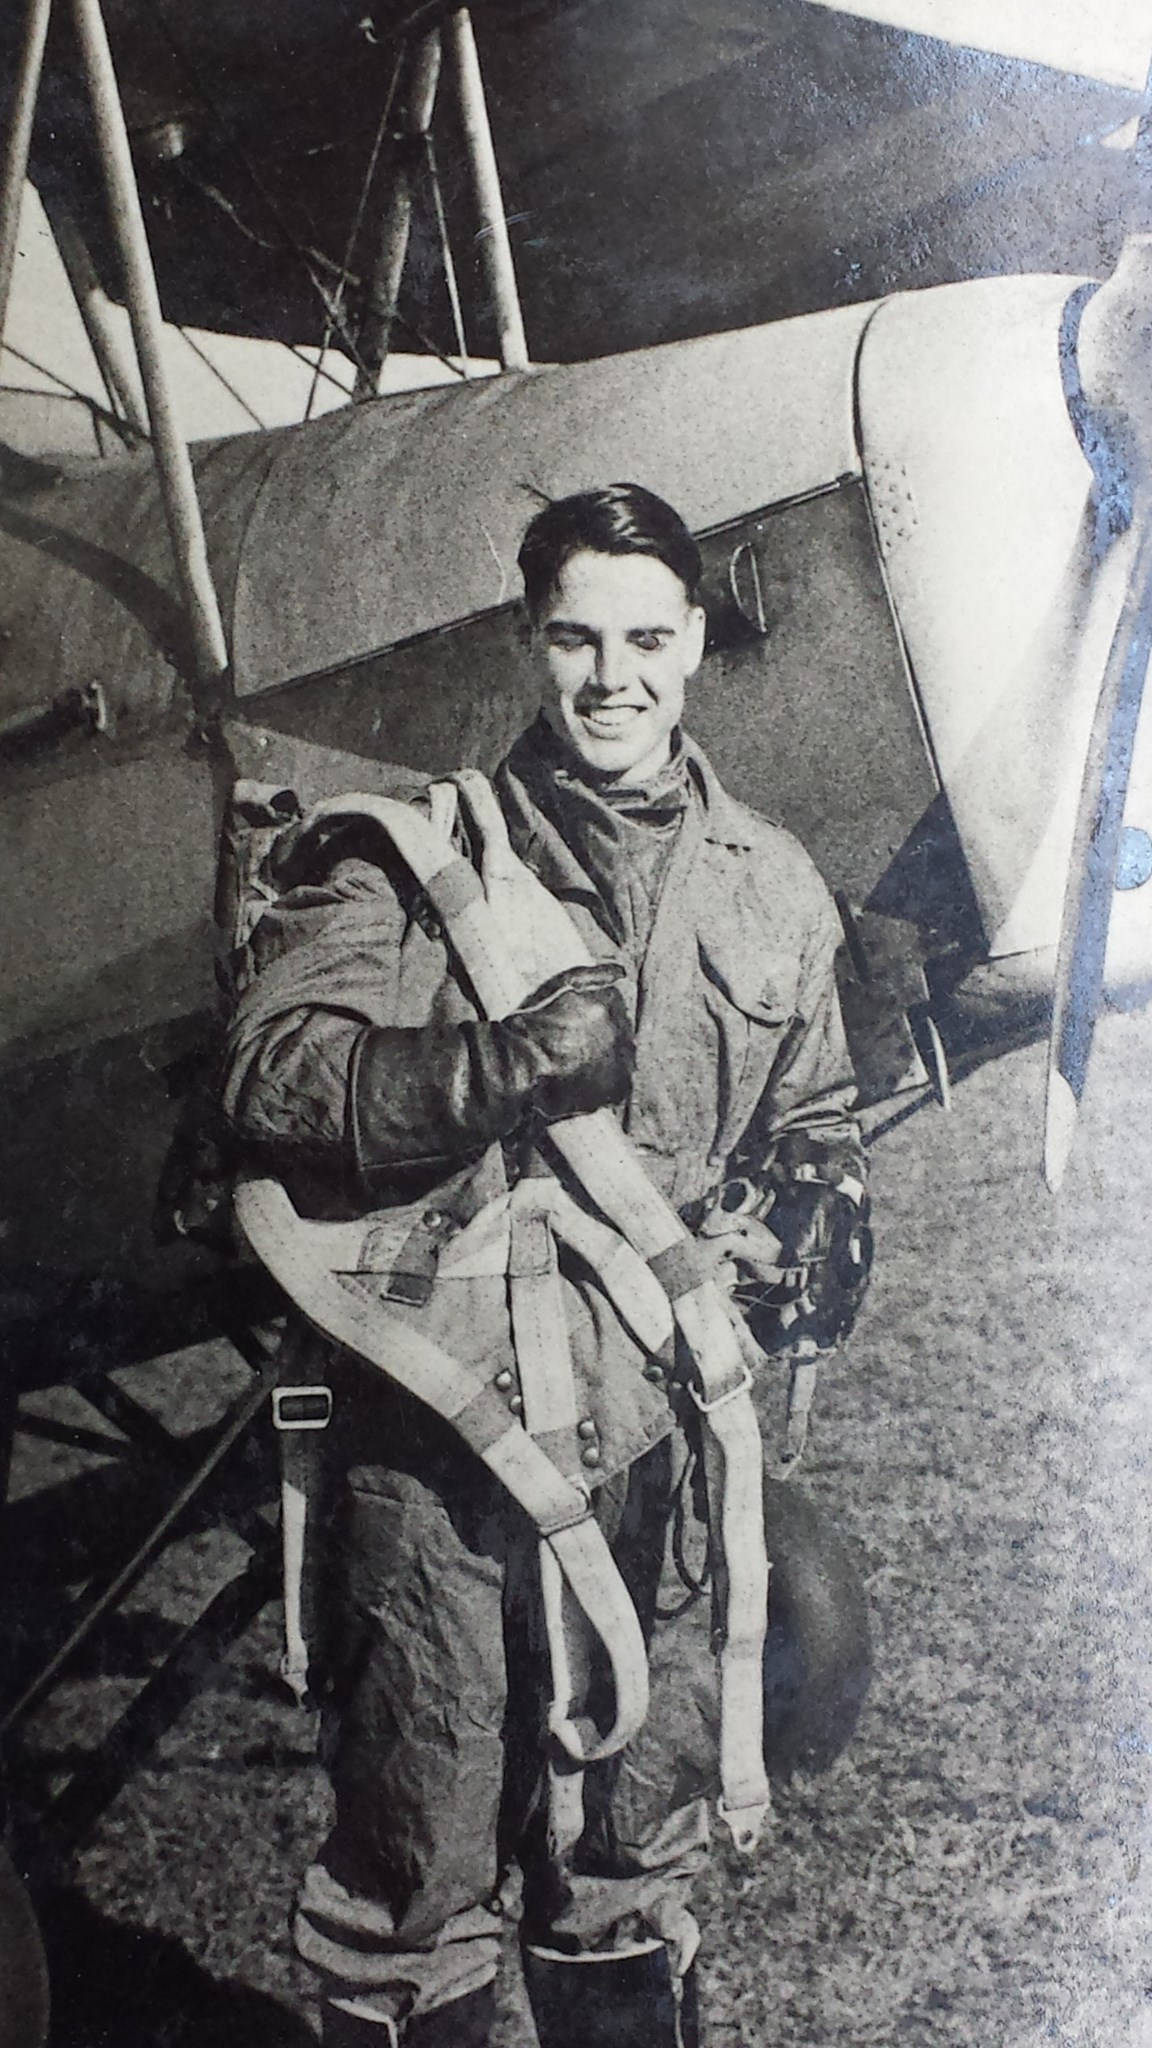 Dad learned to fly civilian aeroplanes, then became a Tiger Moth and jet pilot in the RAF